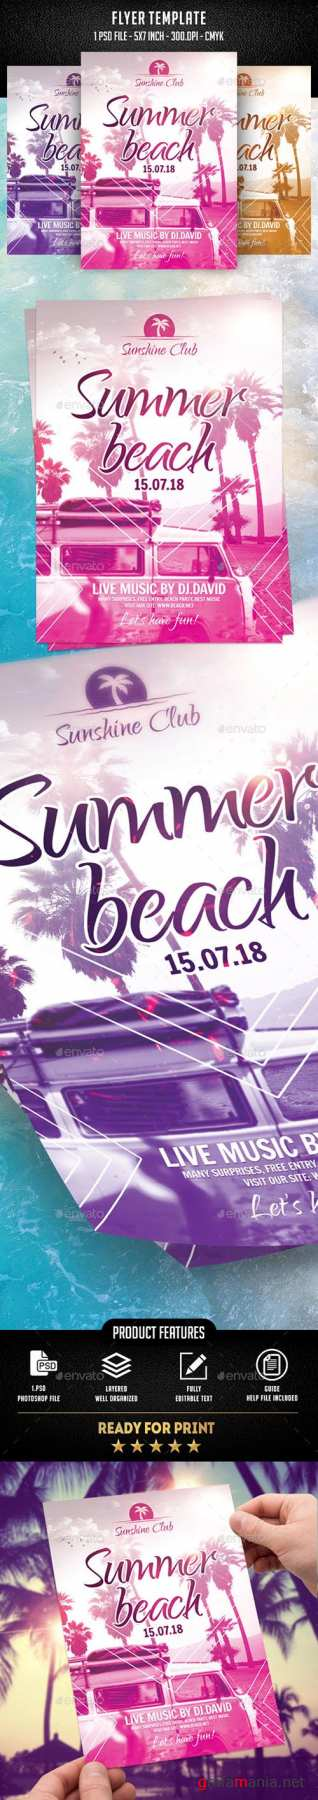 GR - Summer Beach Flyer Template 21964666